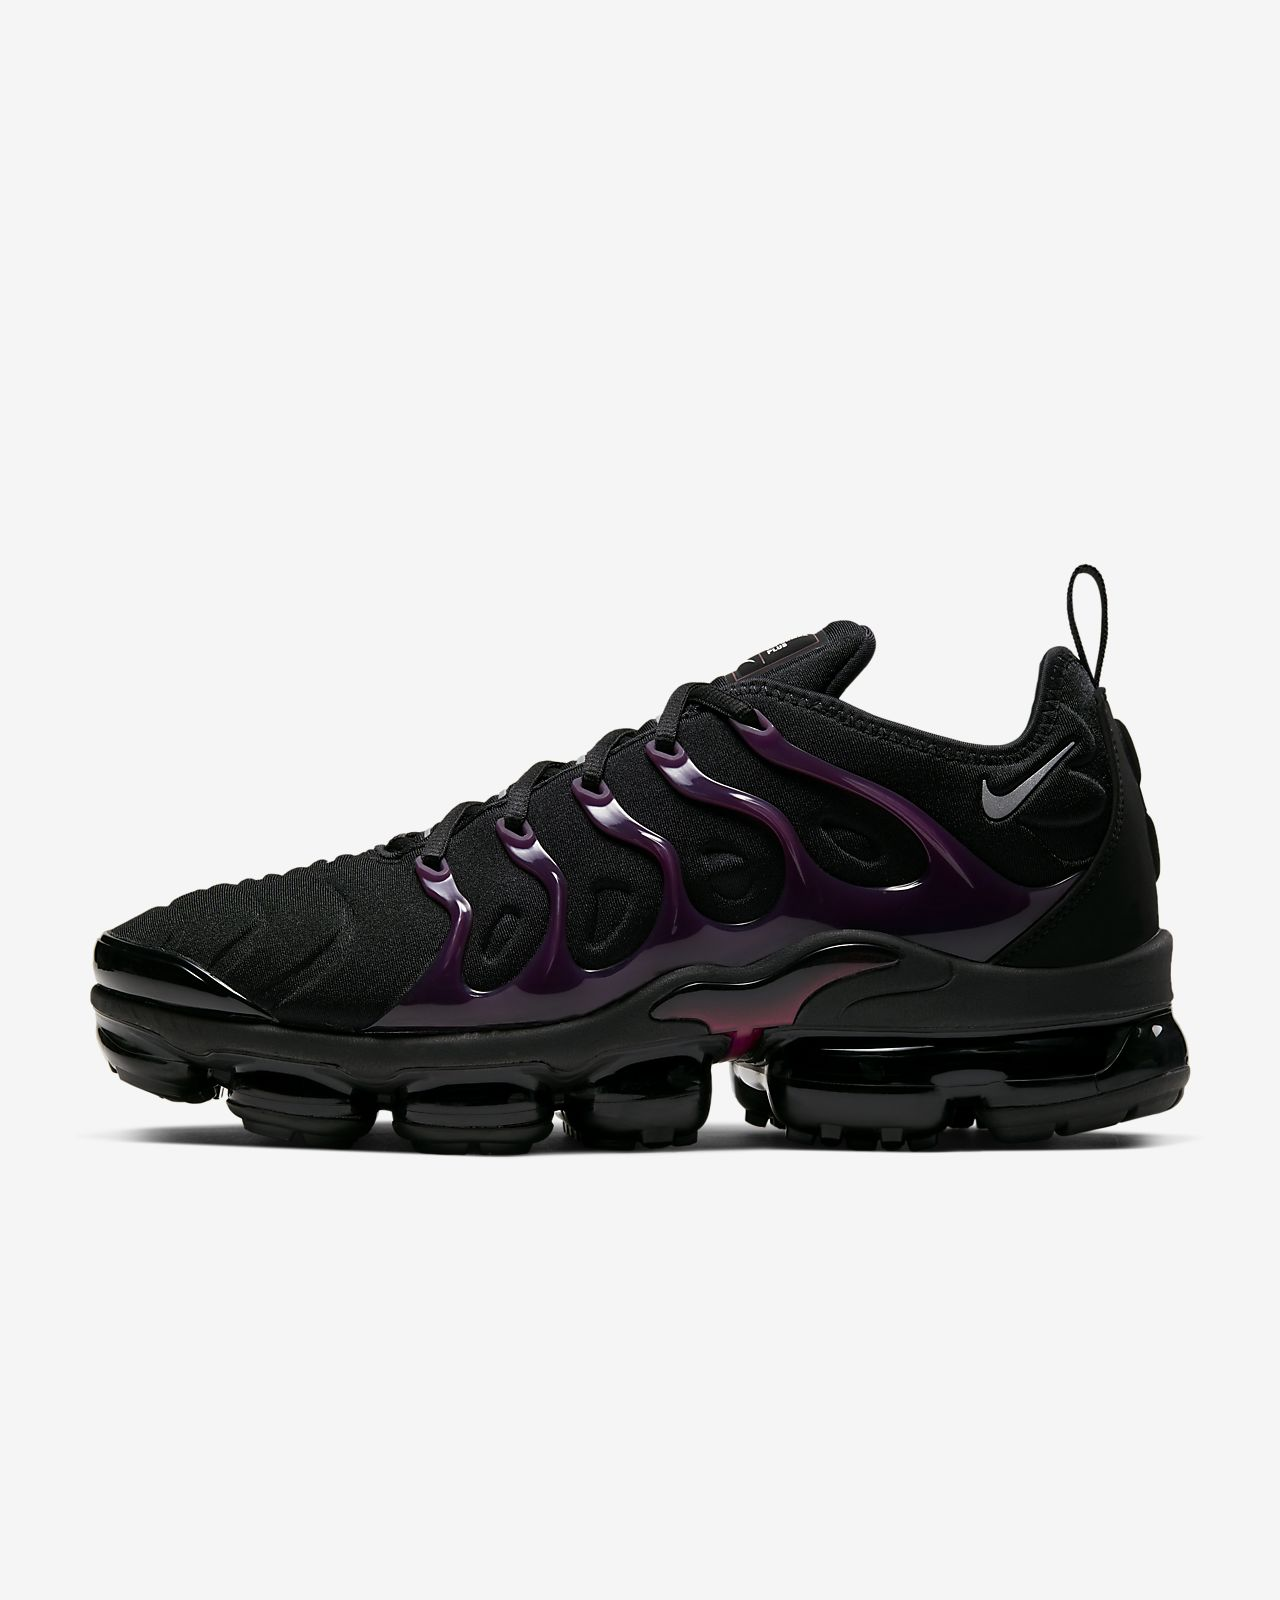 Nike Air Vapormax Plus Mens Shoe